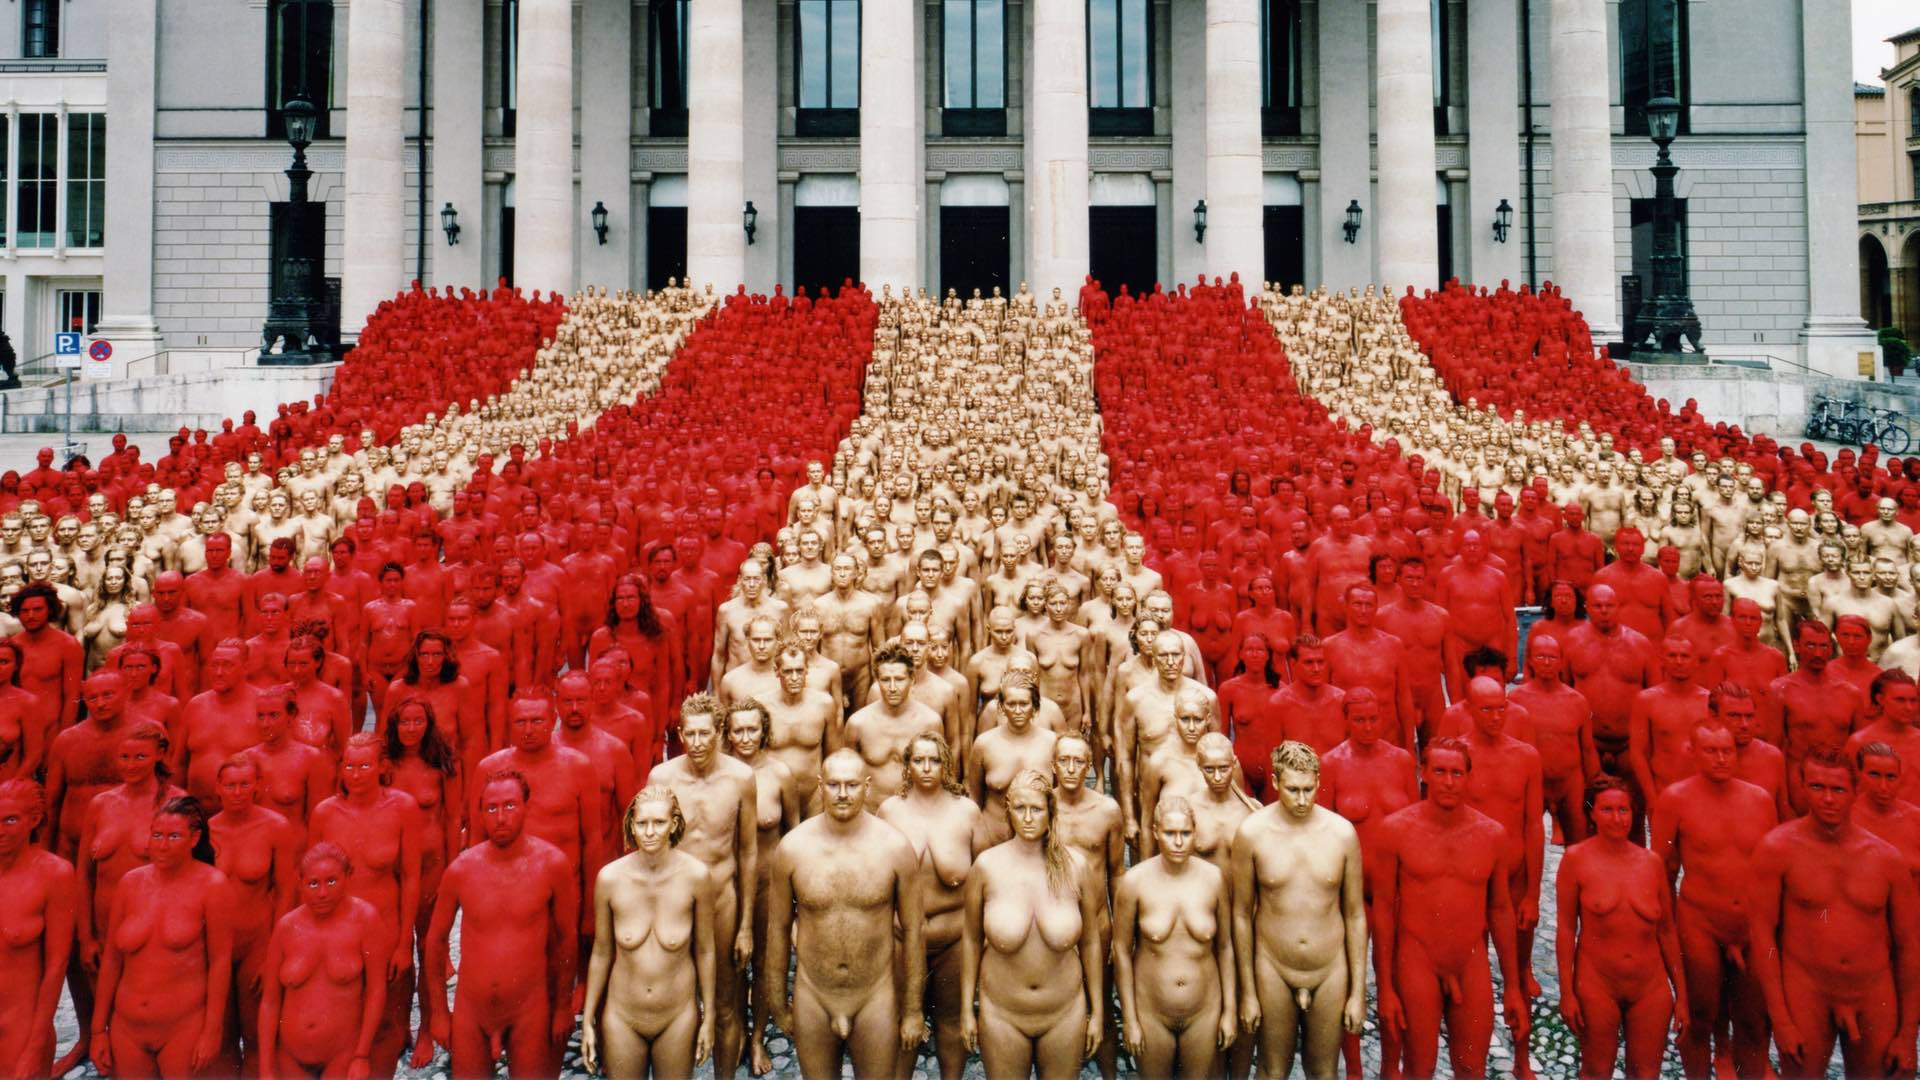 Artist Spencer Tunick Will Stage a Mass Nude Photography Work in Melbourne